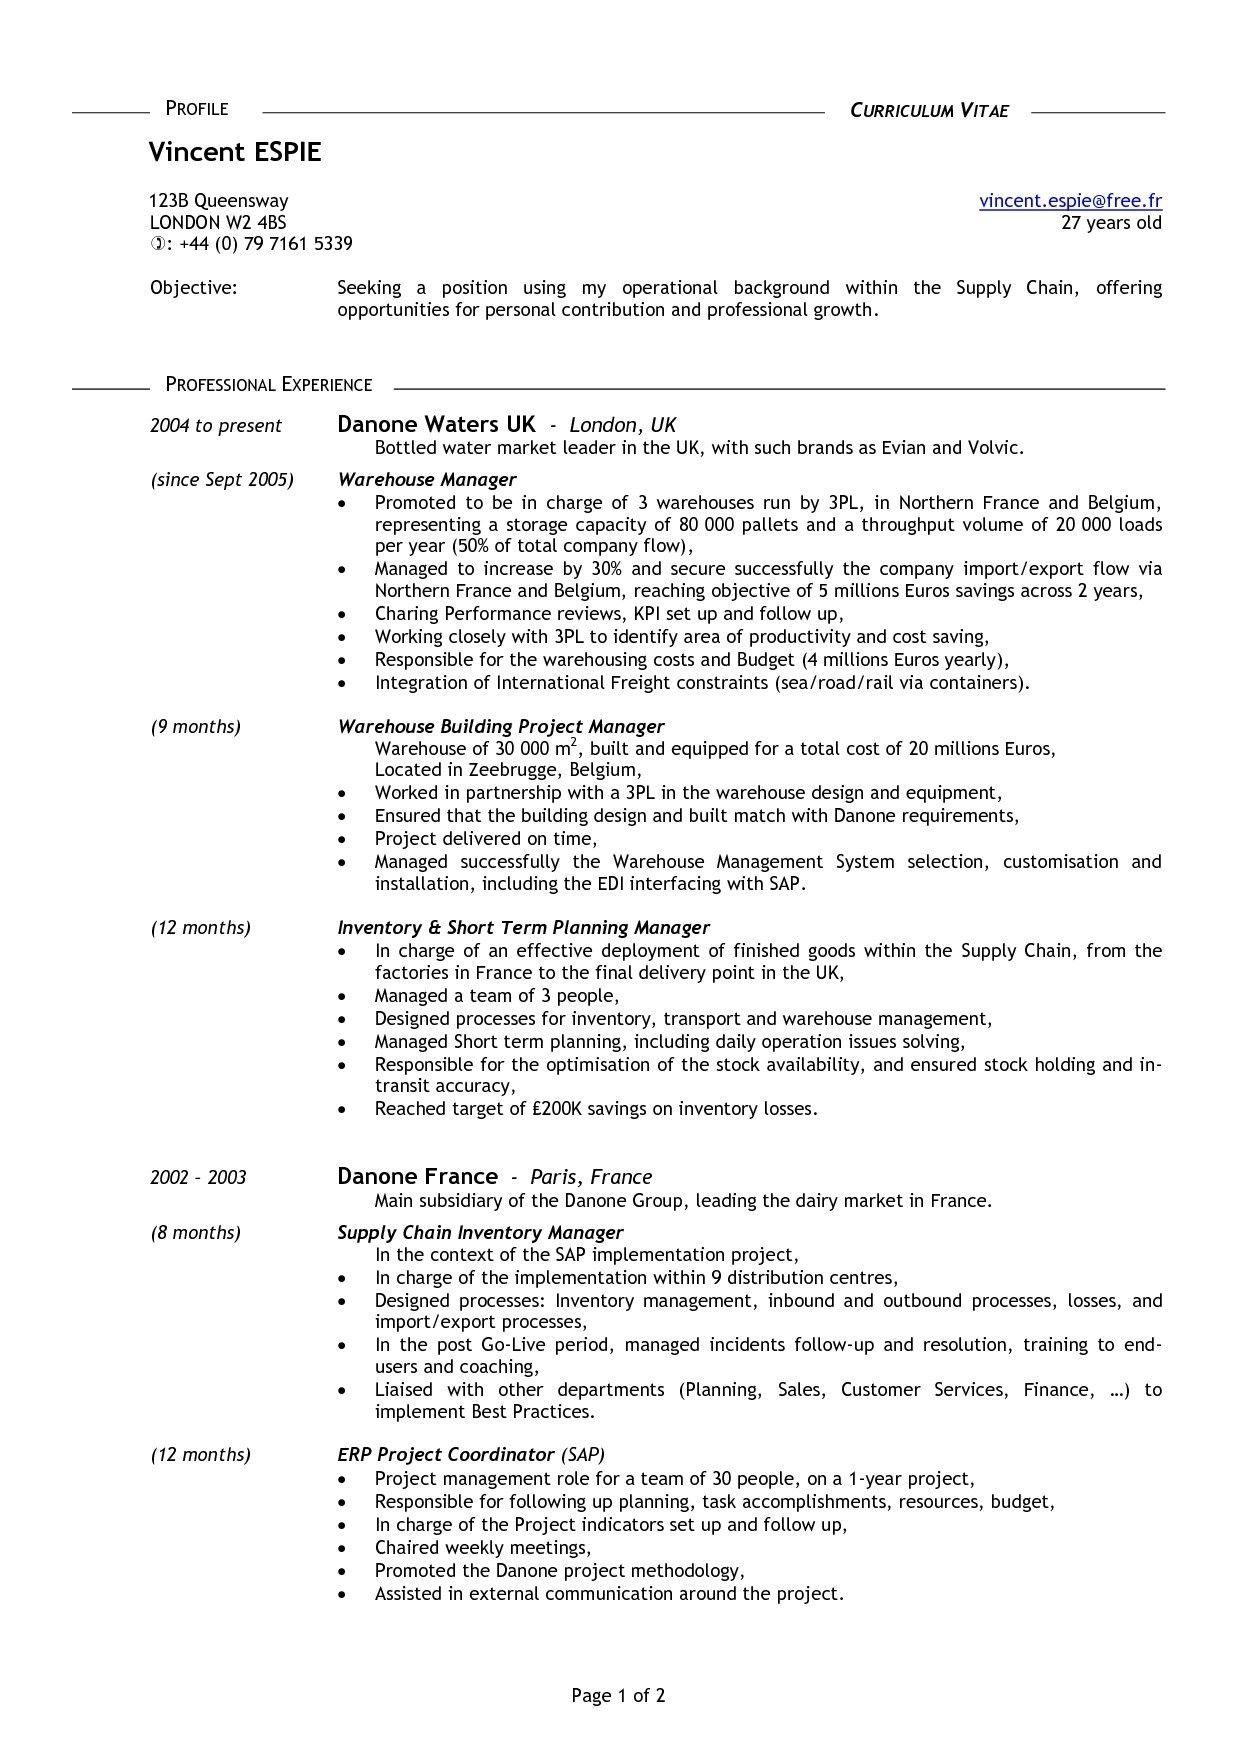 16 Year Old Resume.Cv Template 16 Year Old 1 Cv Template Good Resume